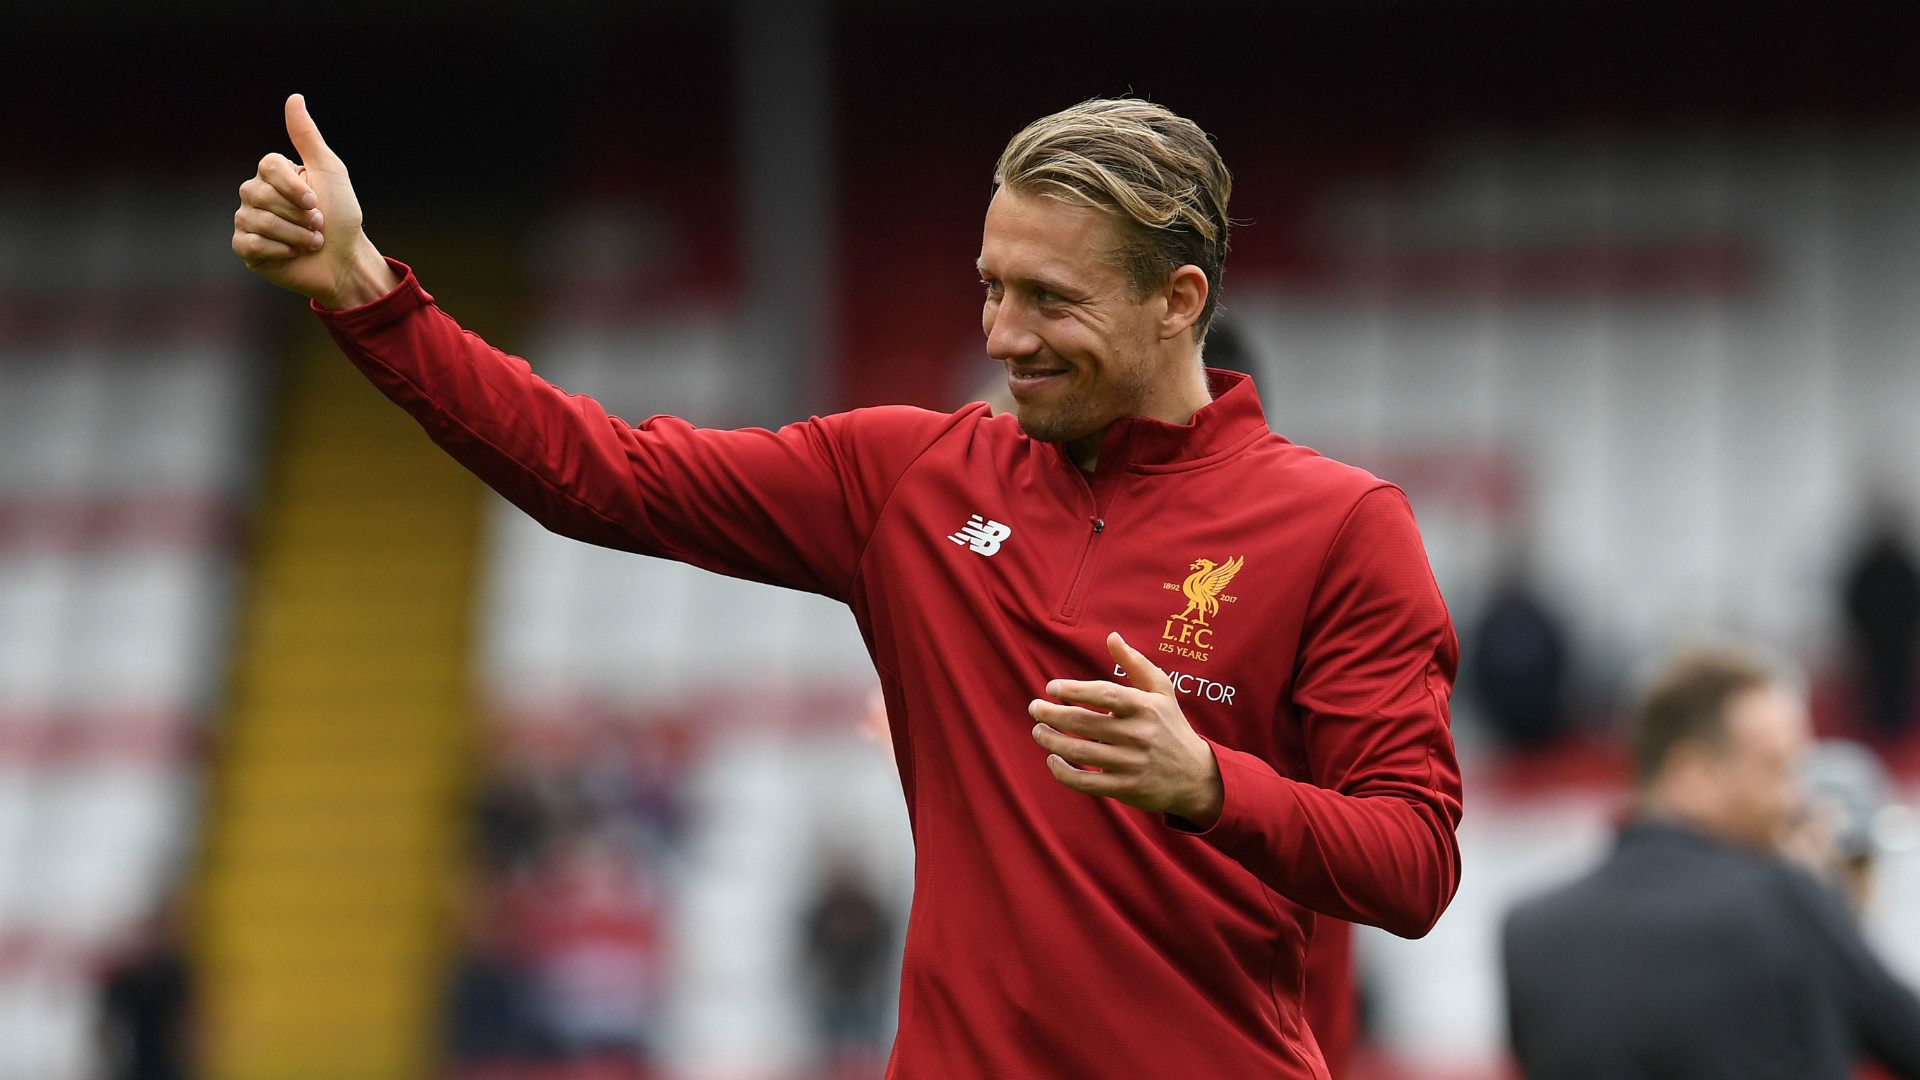 DONE DEAL! Lucas Leiva leaves Liverpool to sign permanent deal with Lazio